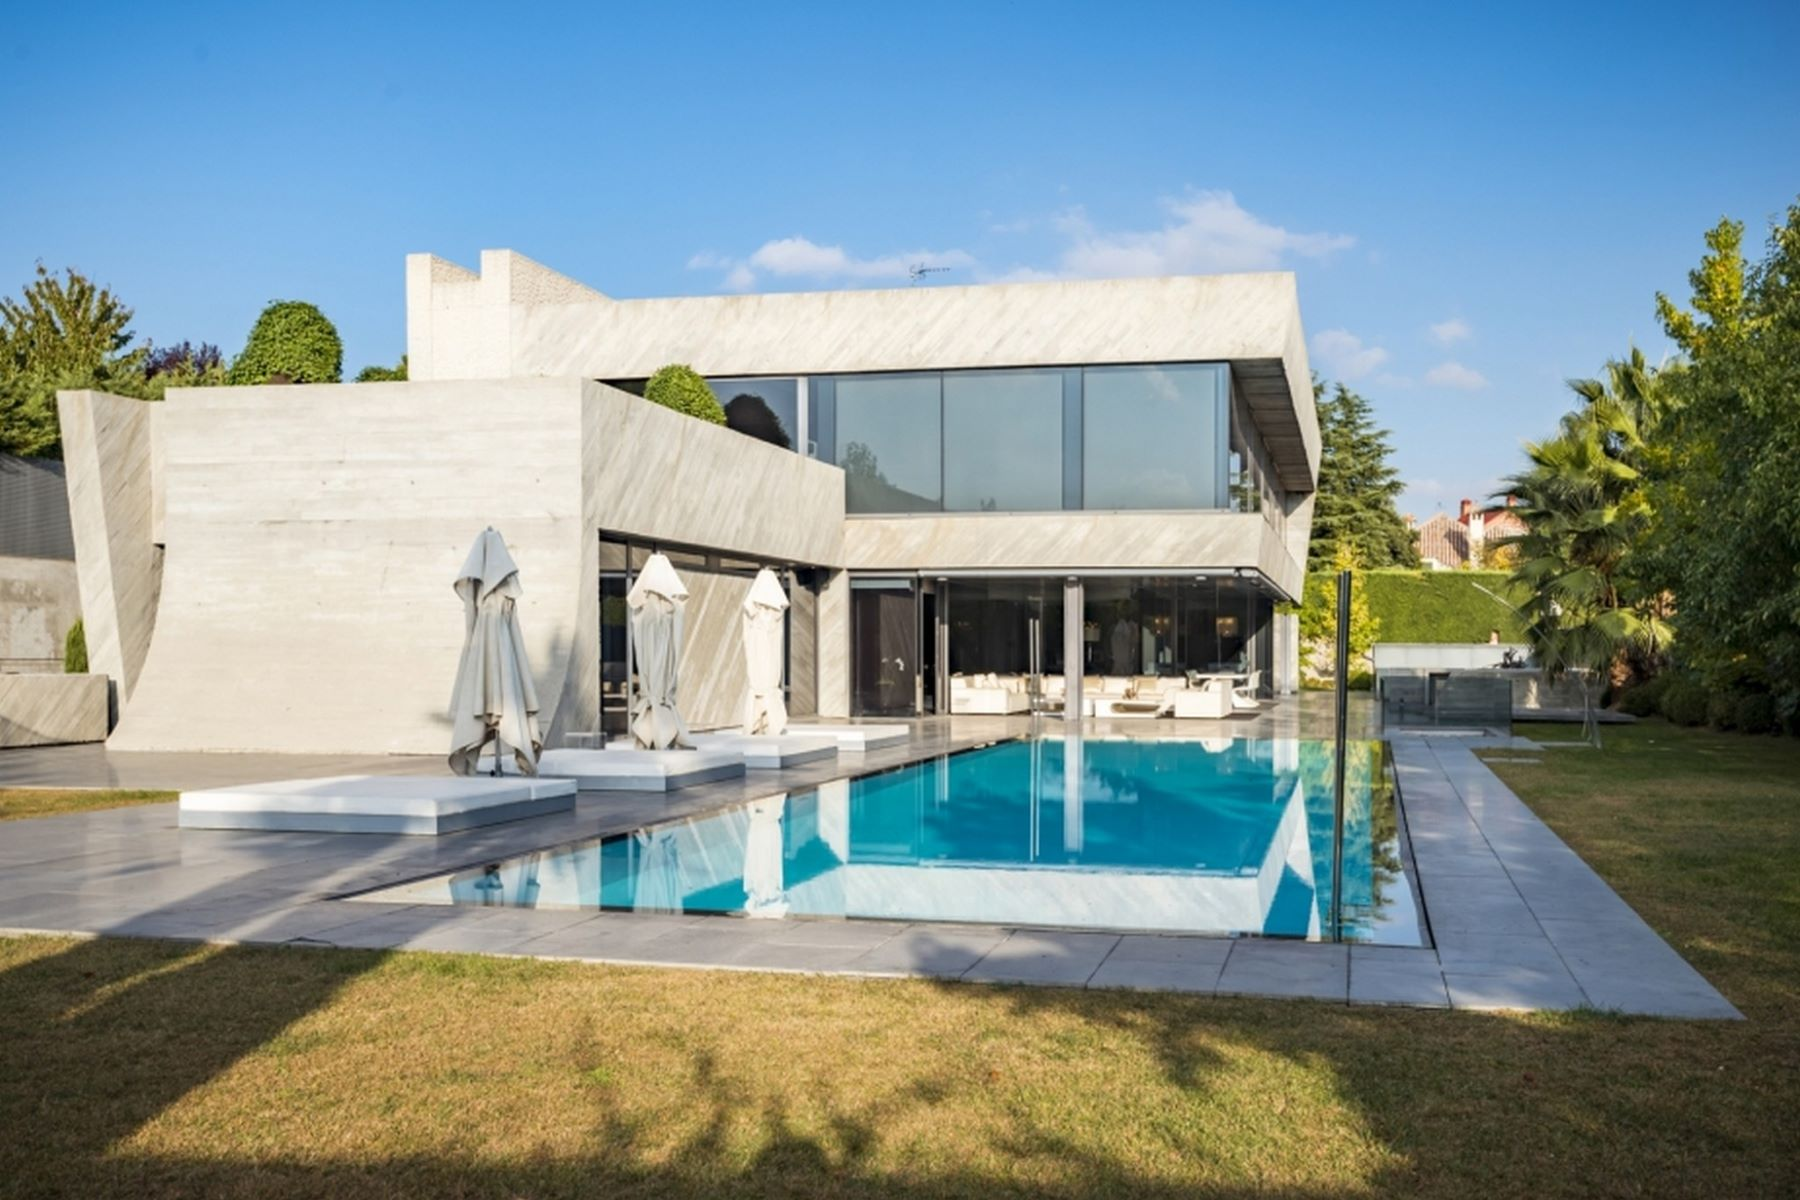 Single Family Home for Sale at Impressive house of unique design by A-cero Studio Other Spain, Other Areas In Spain Spain